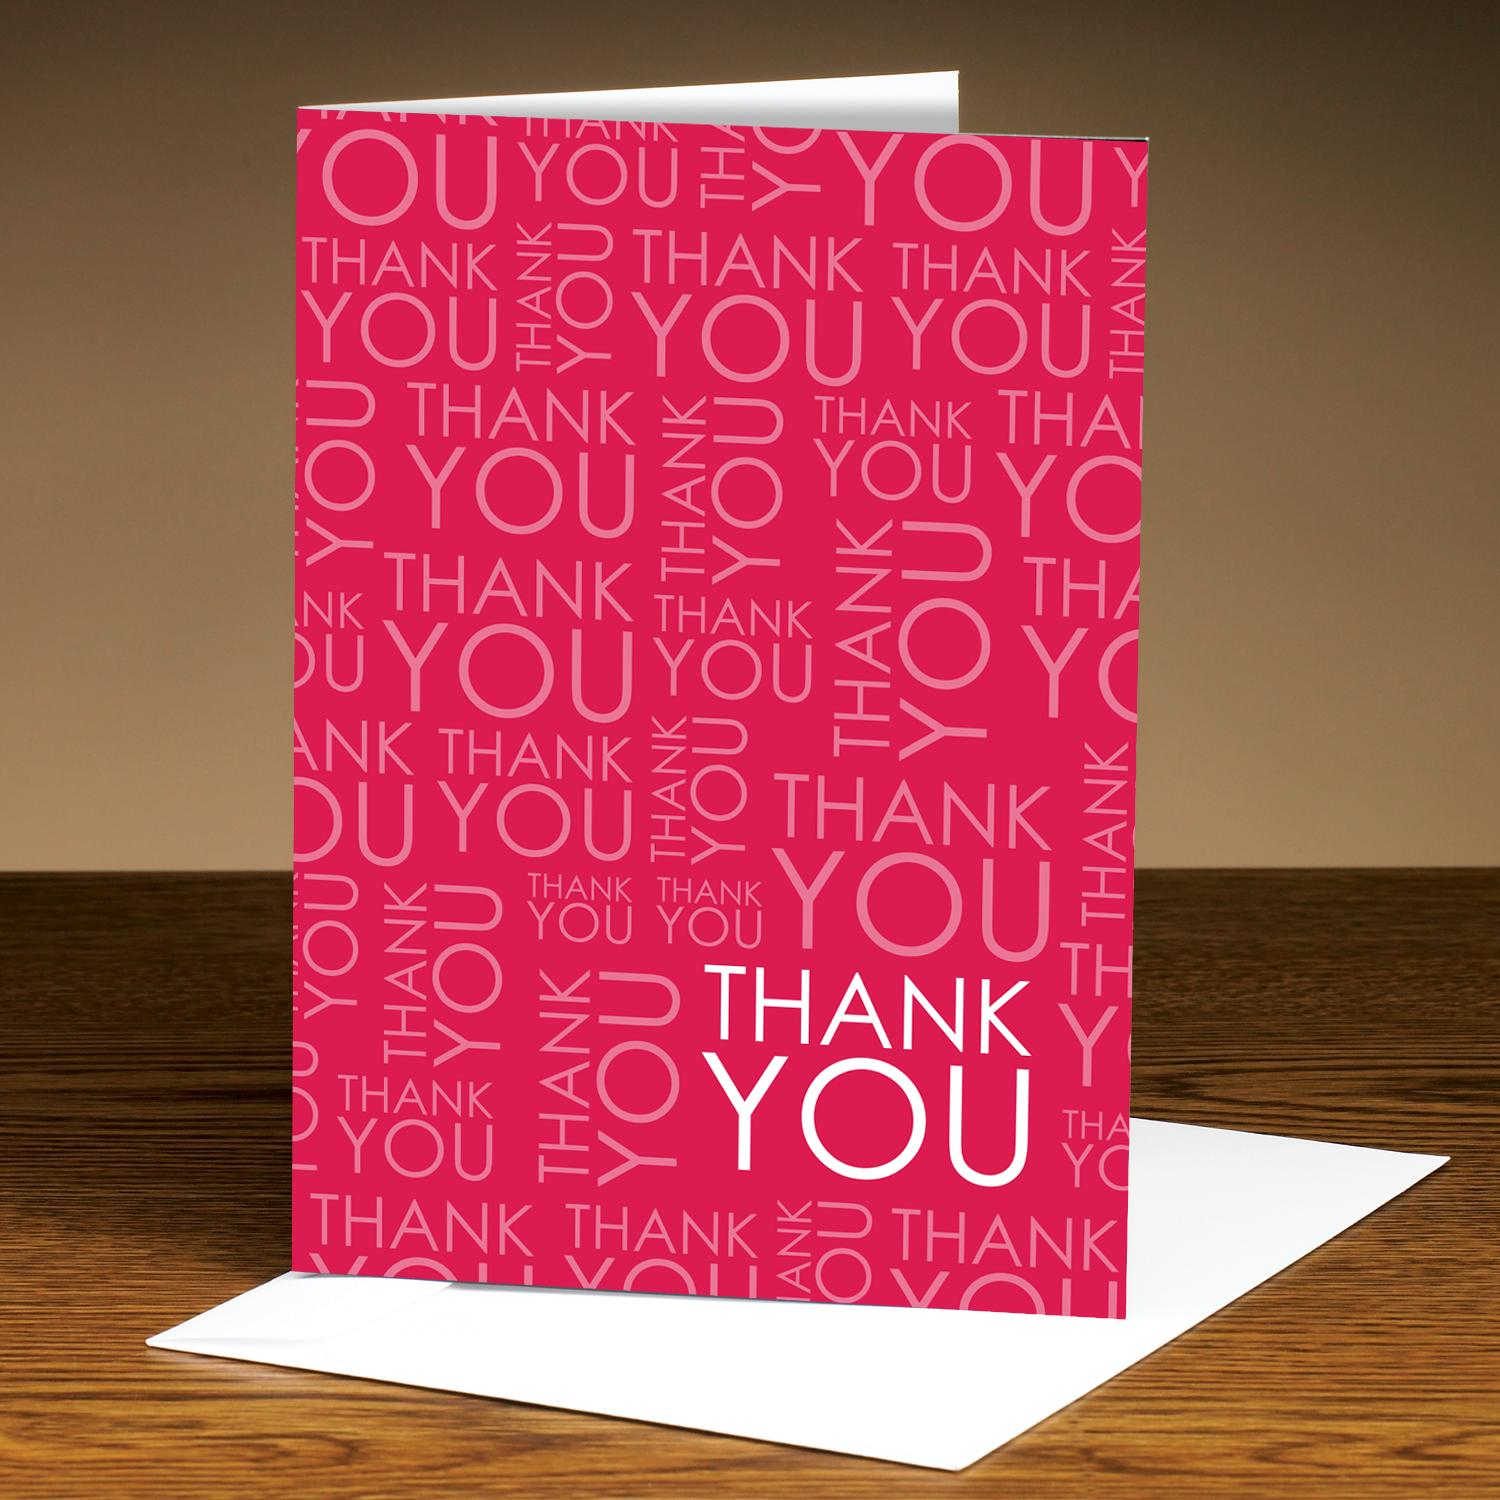 Thank you red 25 pack greeting cards appreciation thank you red 25 pack greeting cards m4hsunfo